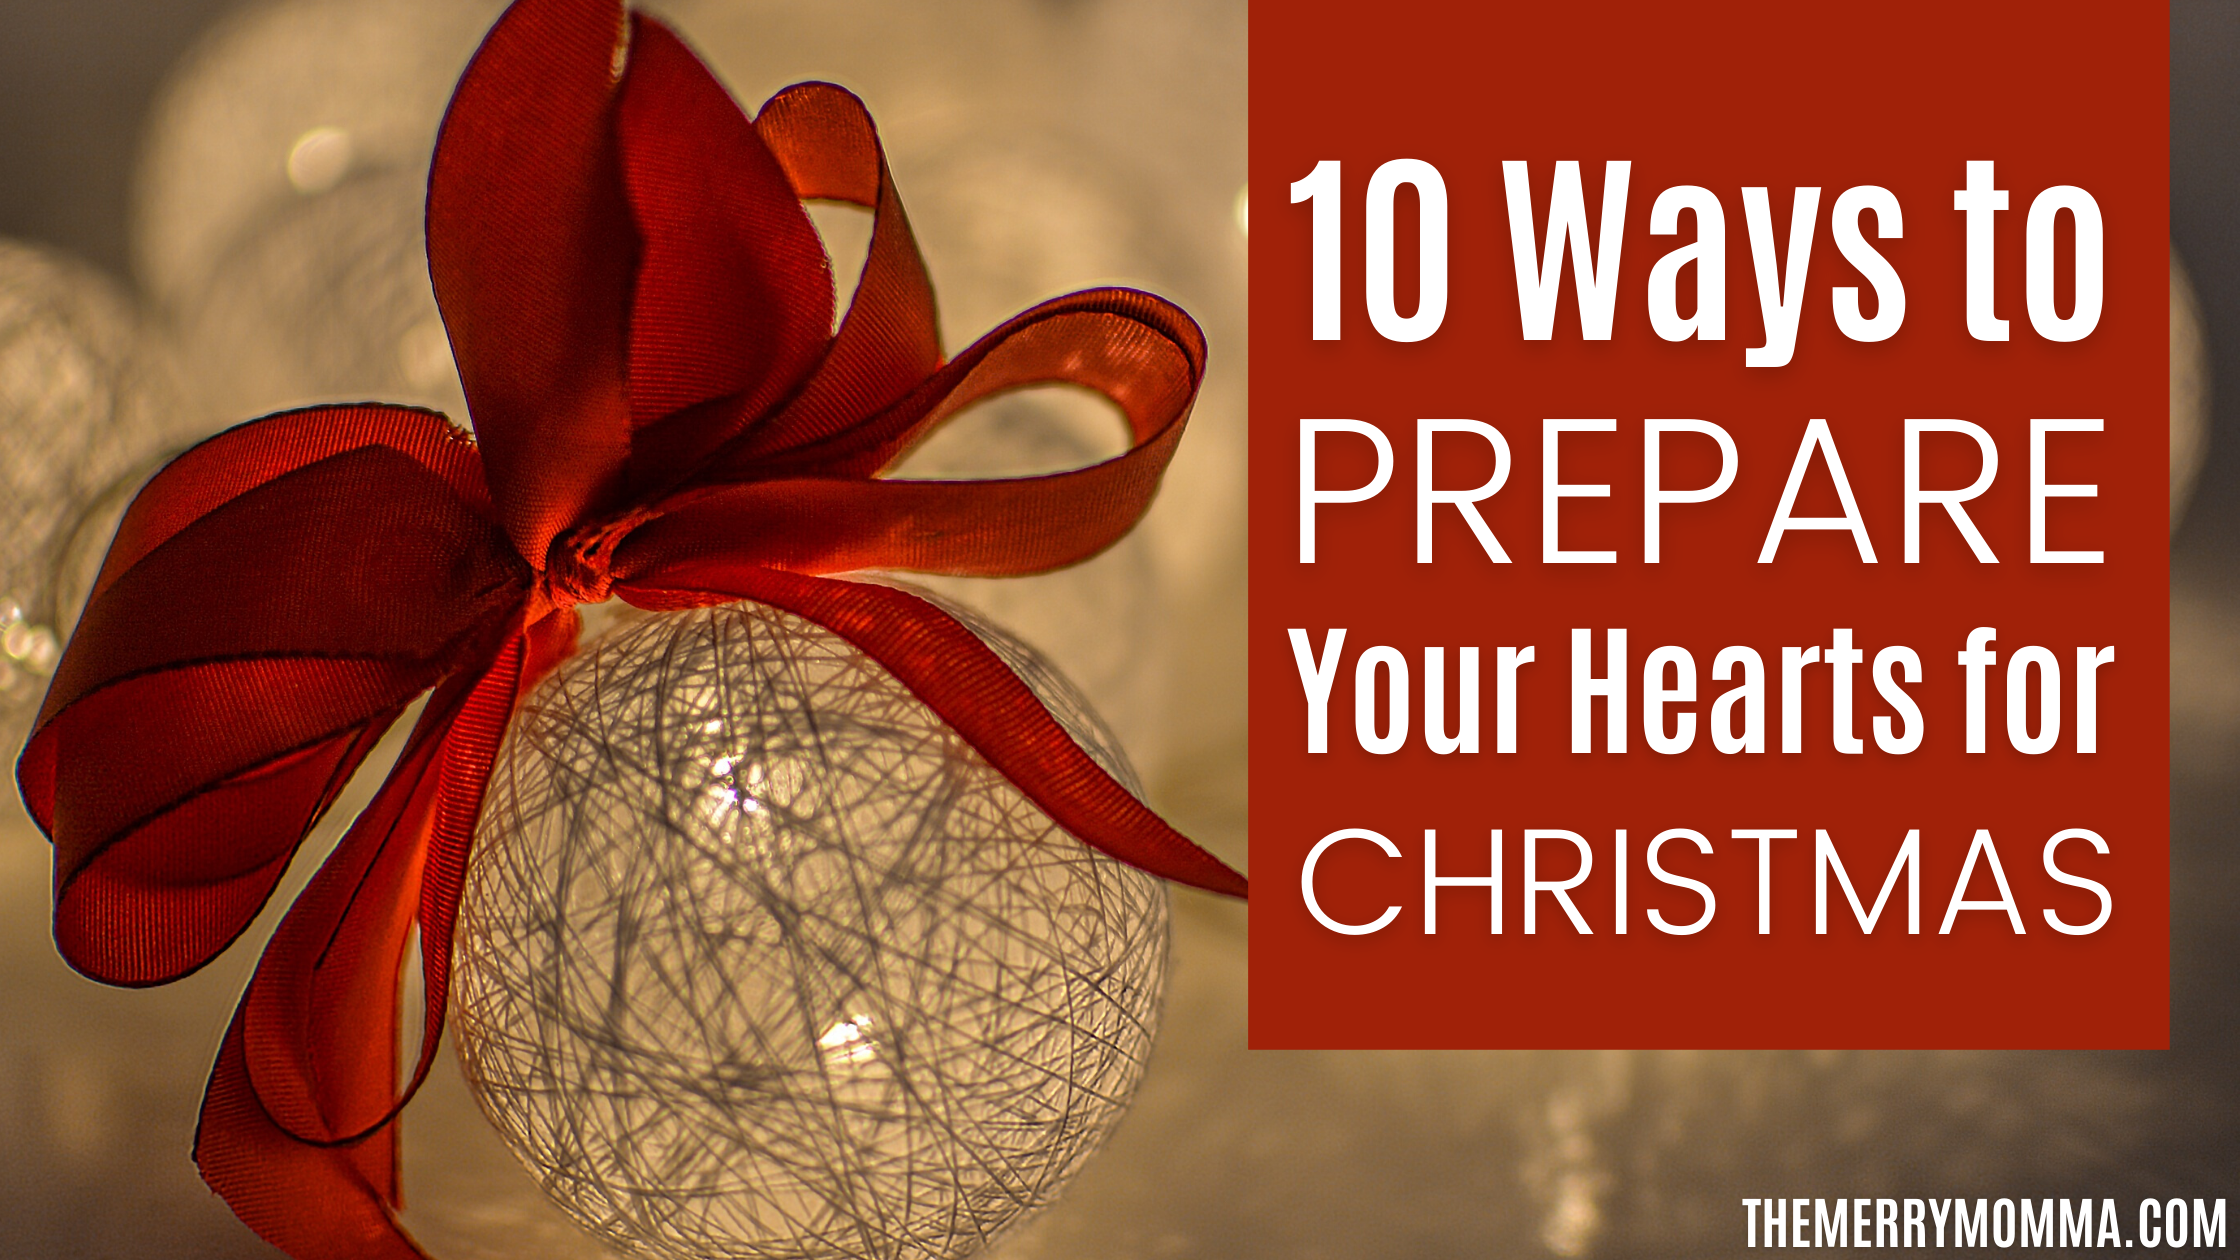 10 Ways to Prepare Your Hearts for Christmas | Advent | The Merry Momma